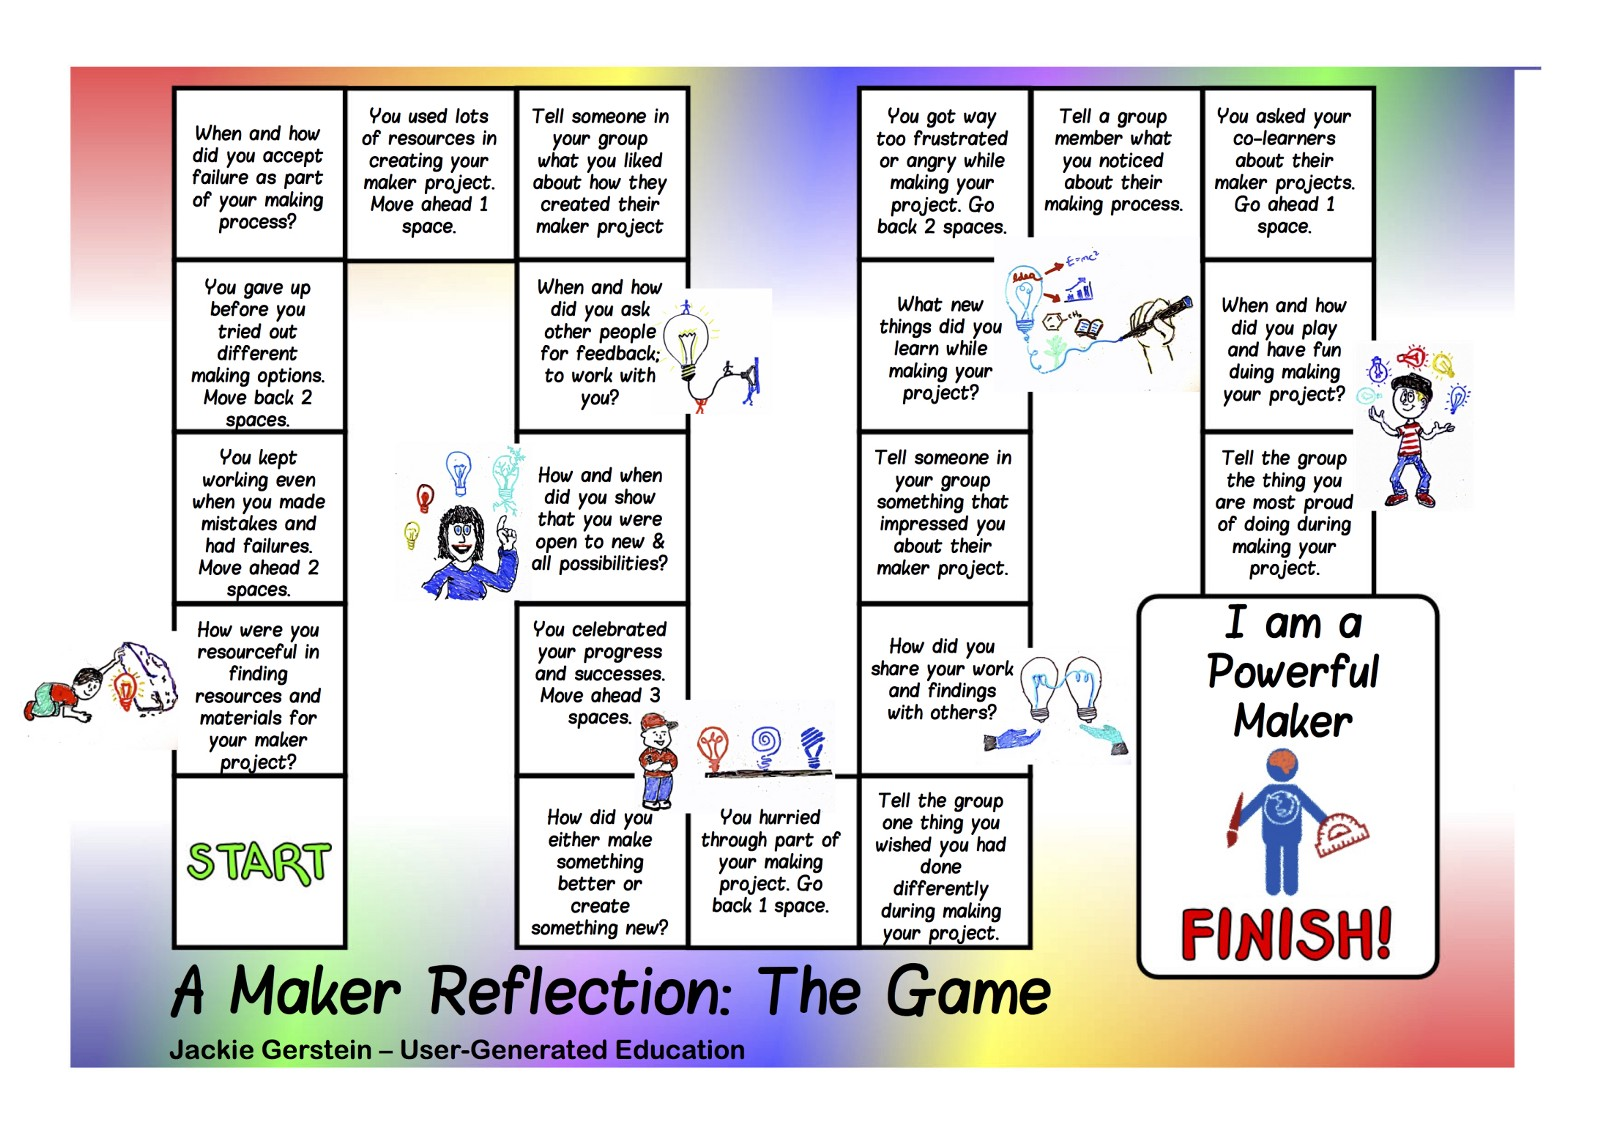 The Educator As A Maker Workshop Jackiegerstein Edd Series Circuit Thinglink Reflecting On Making Process Through Playing Reflection Board Game Developing Personal Goals For Next Make